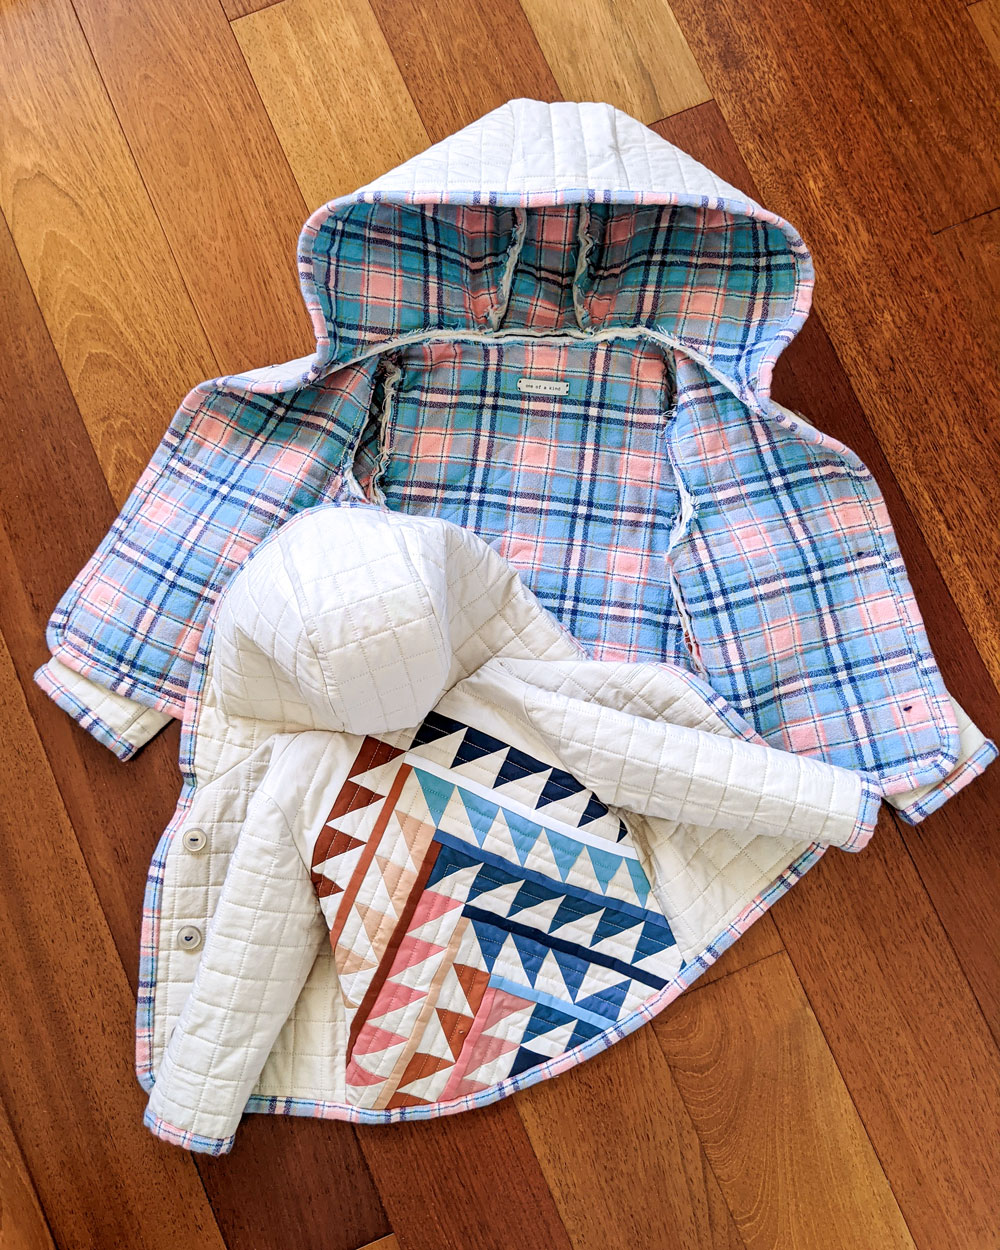 How to sew a quilted coat: tips on choosing fabric, a coat pattern and a quilt pattern plus tips on how to make your coat fit you! suzyquilts.com #quiltedcoat #sewcoat